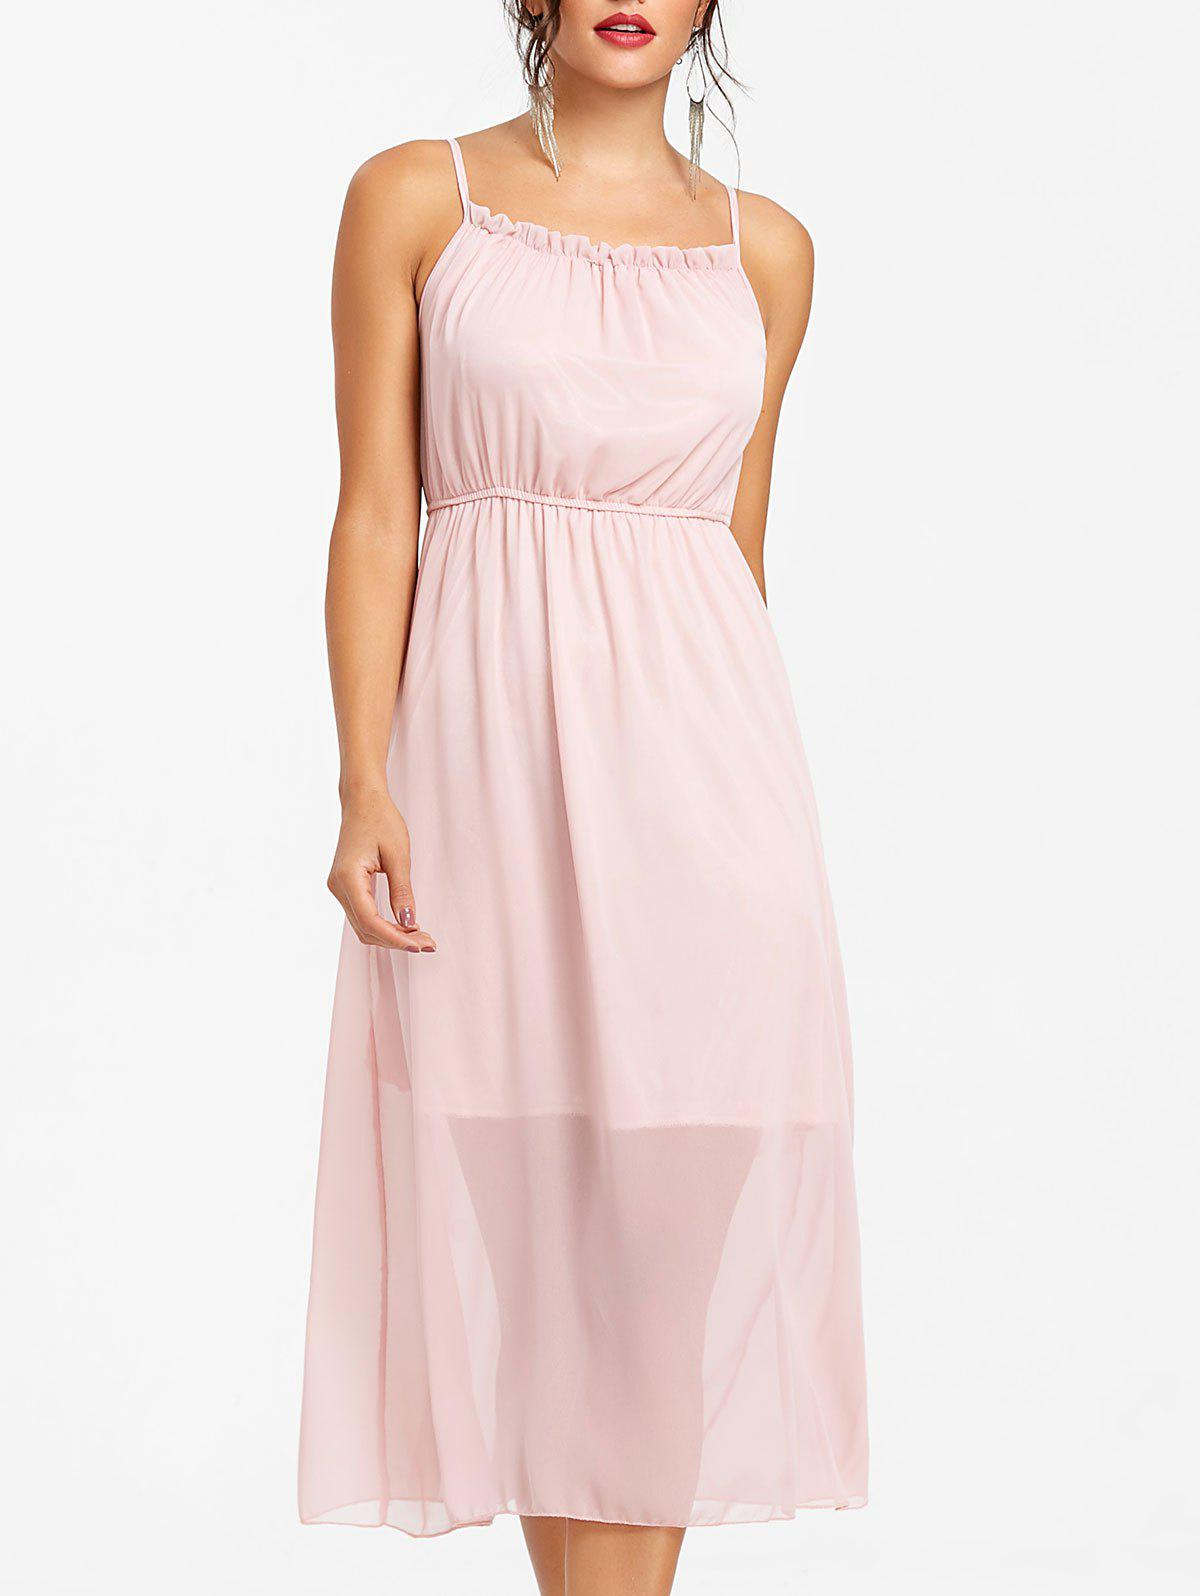 High Waisted Spaghetti Strap Chiffon Dress - PIG PINK S